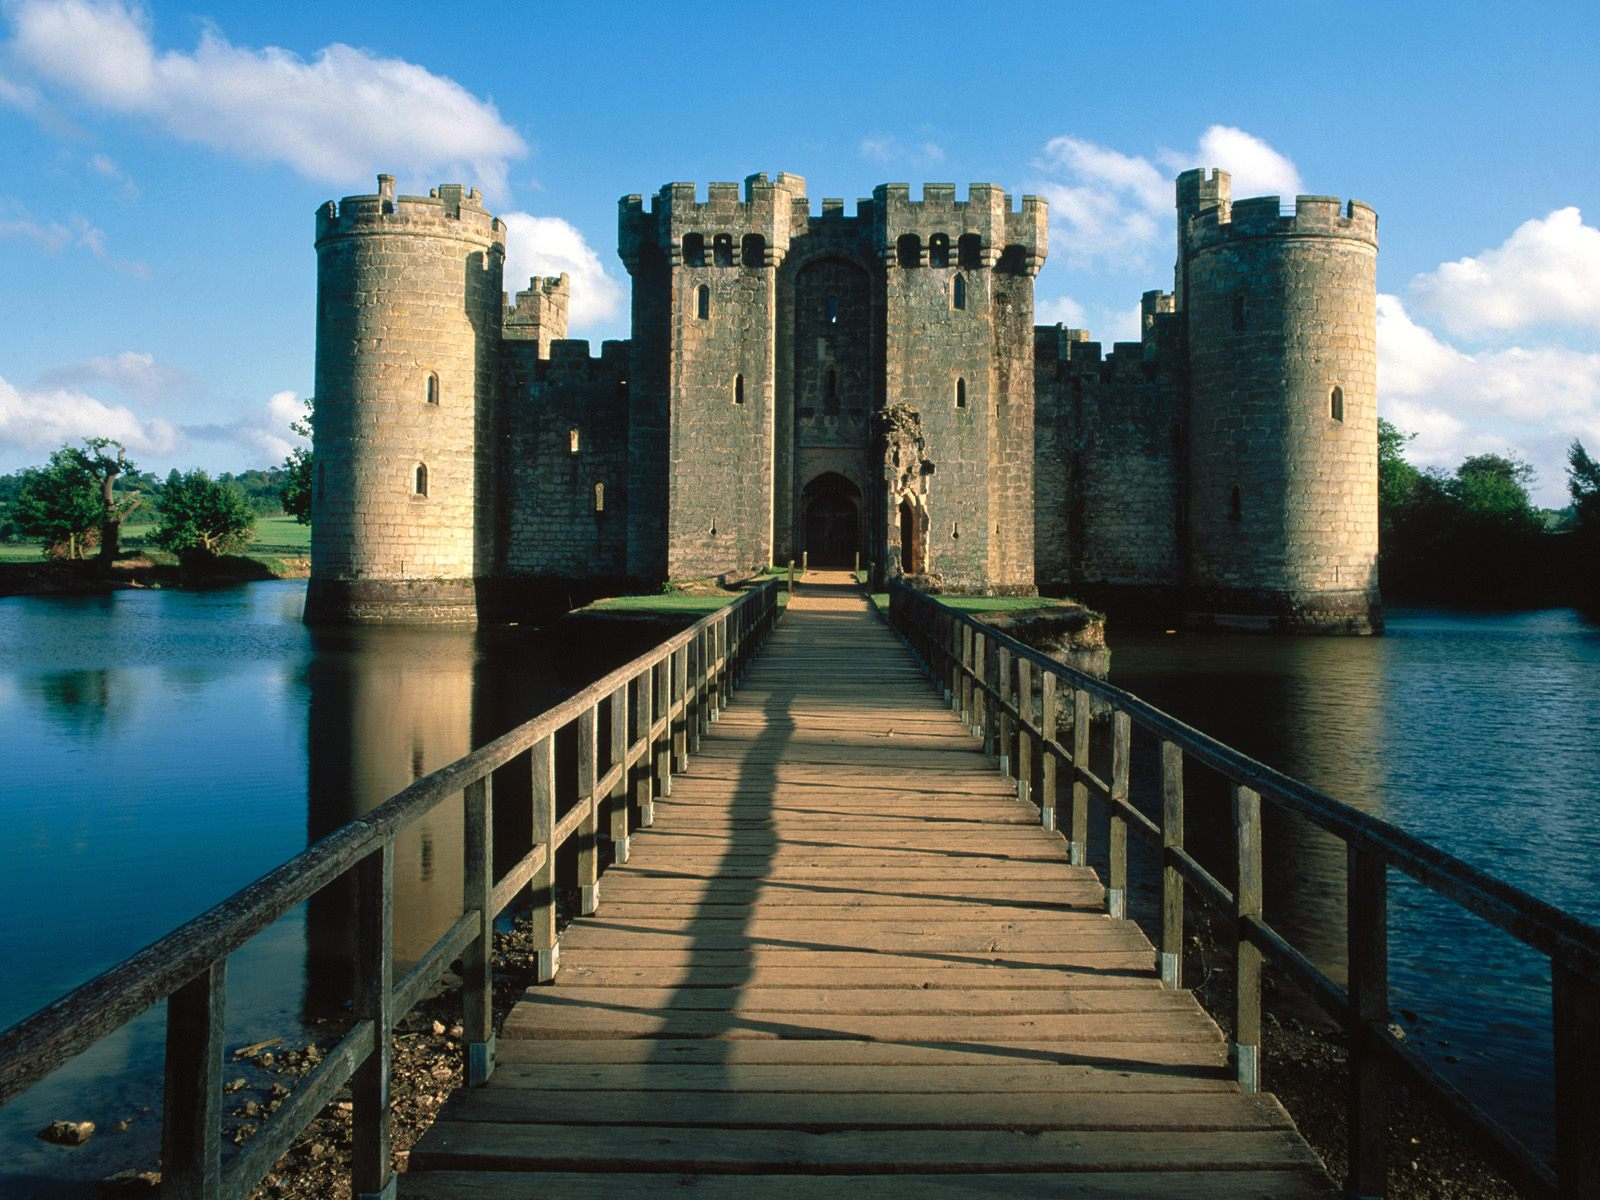 Bodiam castle and bridge east sussex england picture for Wallpaper home england